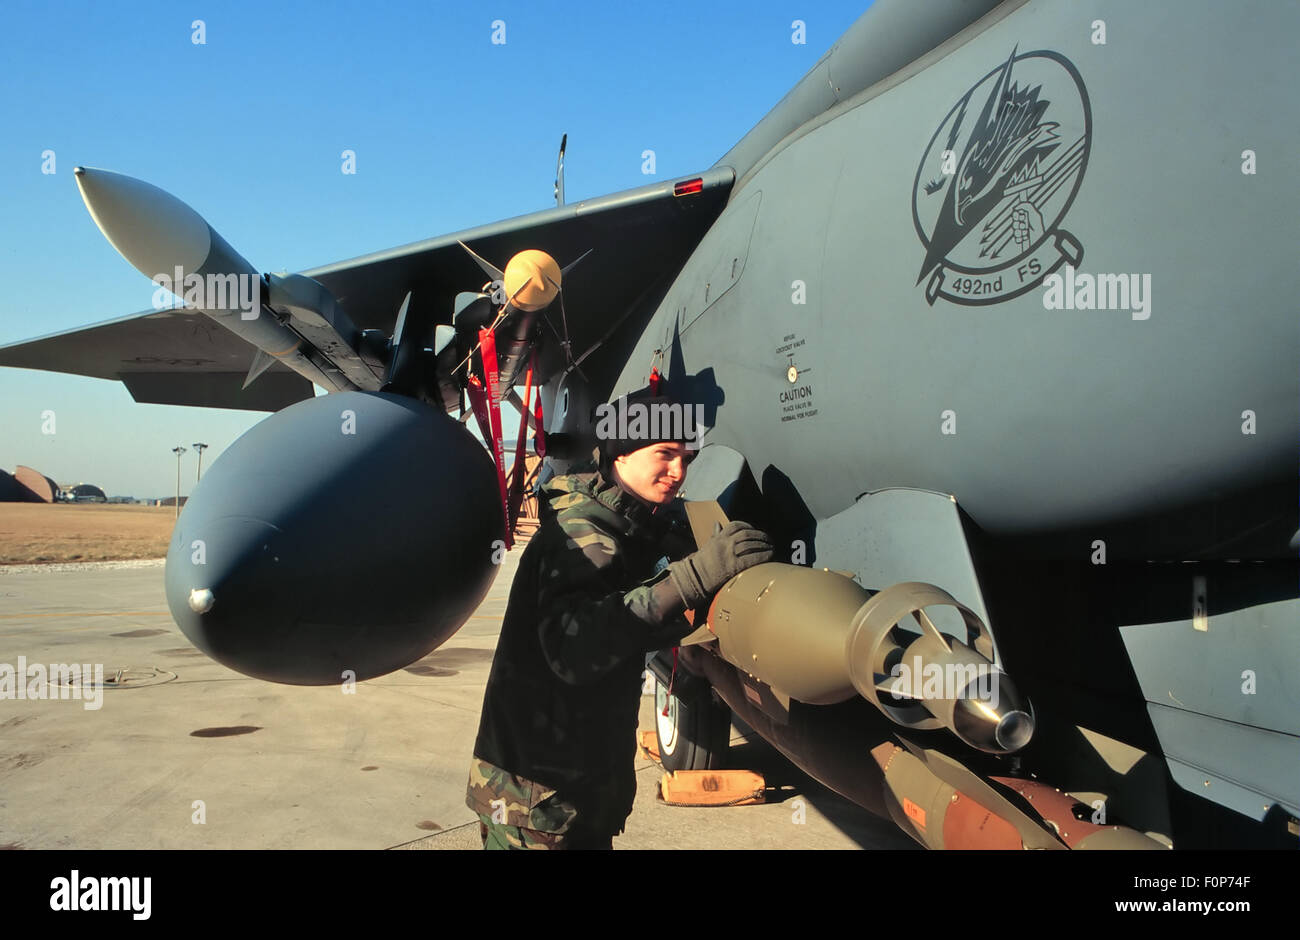 US Air Force, laser guided bombs are loaded on a AF 15 fighter-bomber in the US air base of Aviano (Pordenone, Italy) - Stock Image